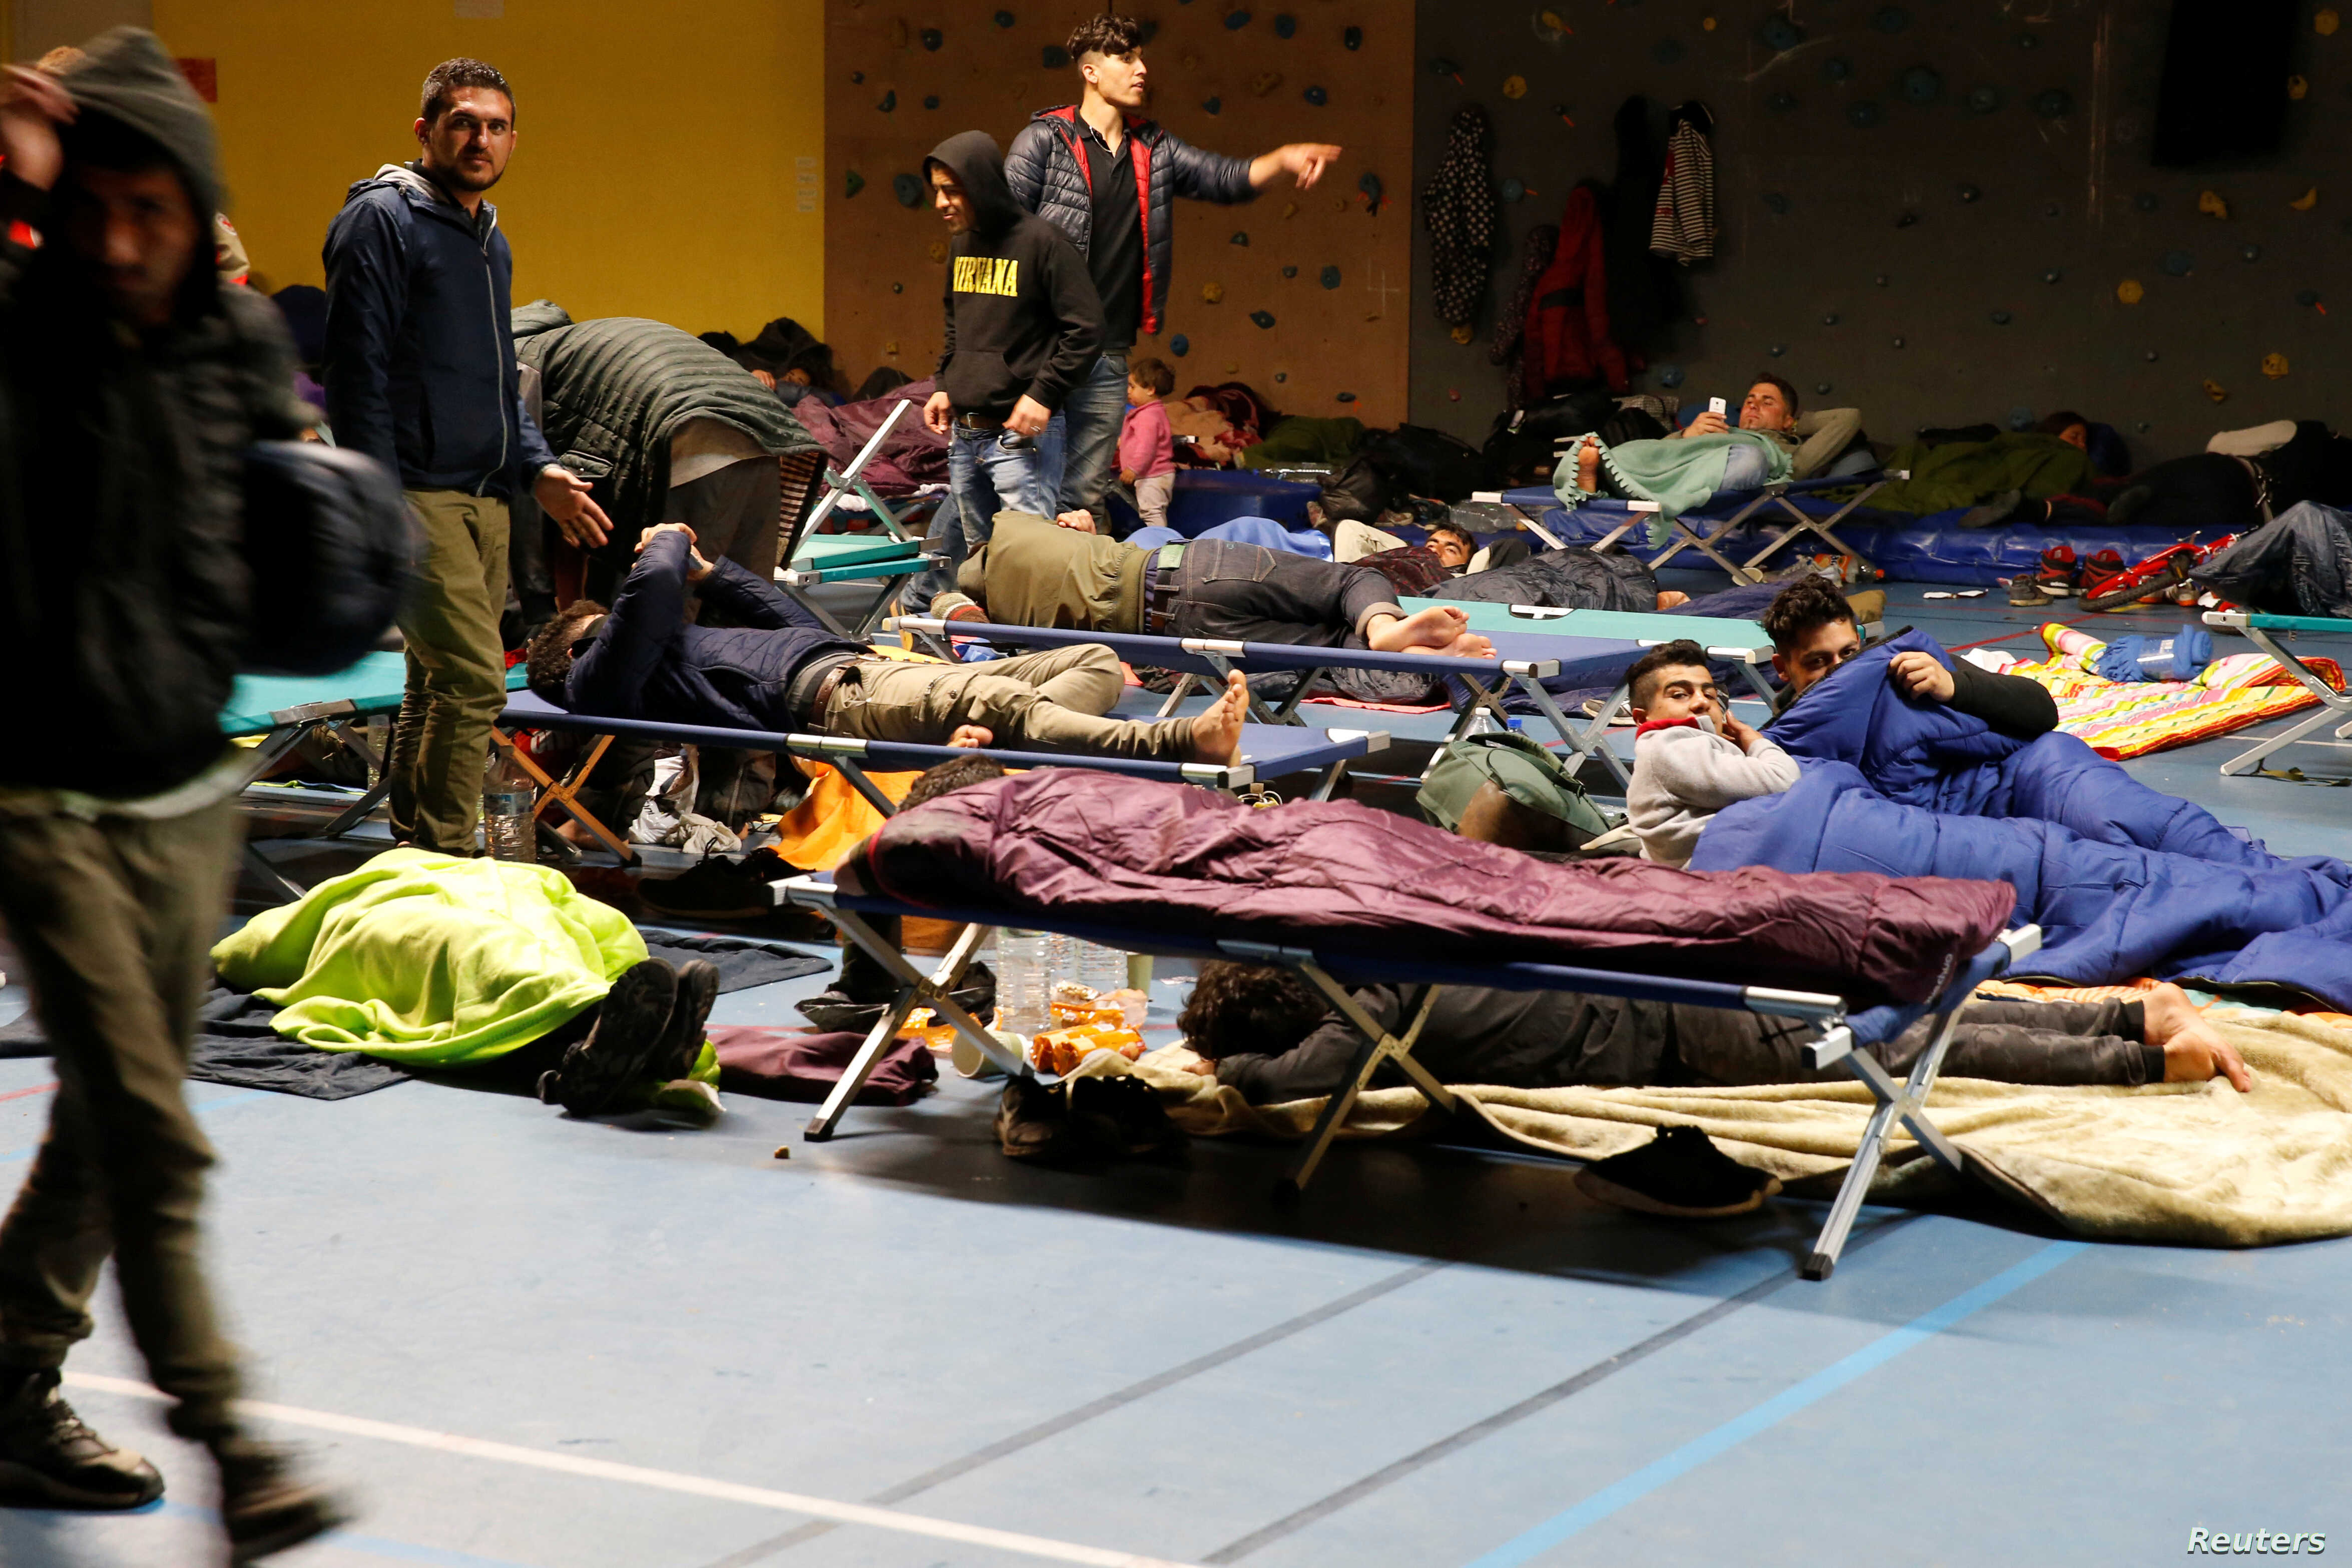 Migrants sleep in a gym after a big fire which destroyed many wood houses at a camp for migrants in Grande-Synthe near Dunkirk, France, April 11, 2017.